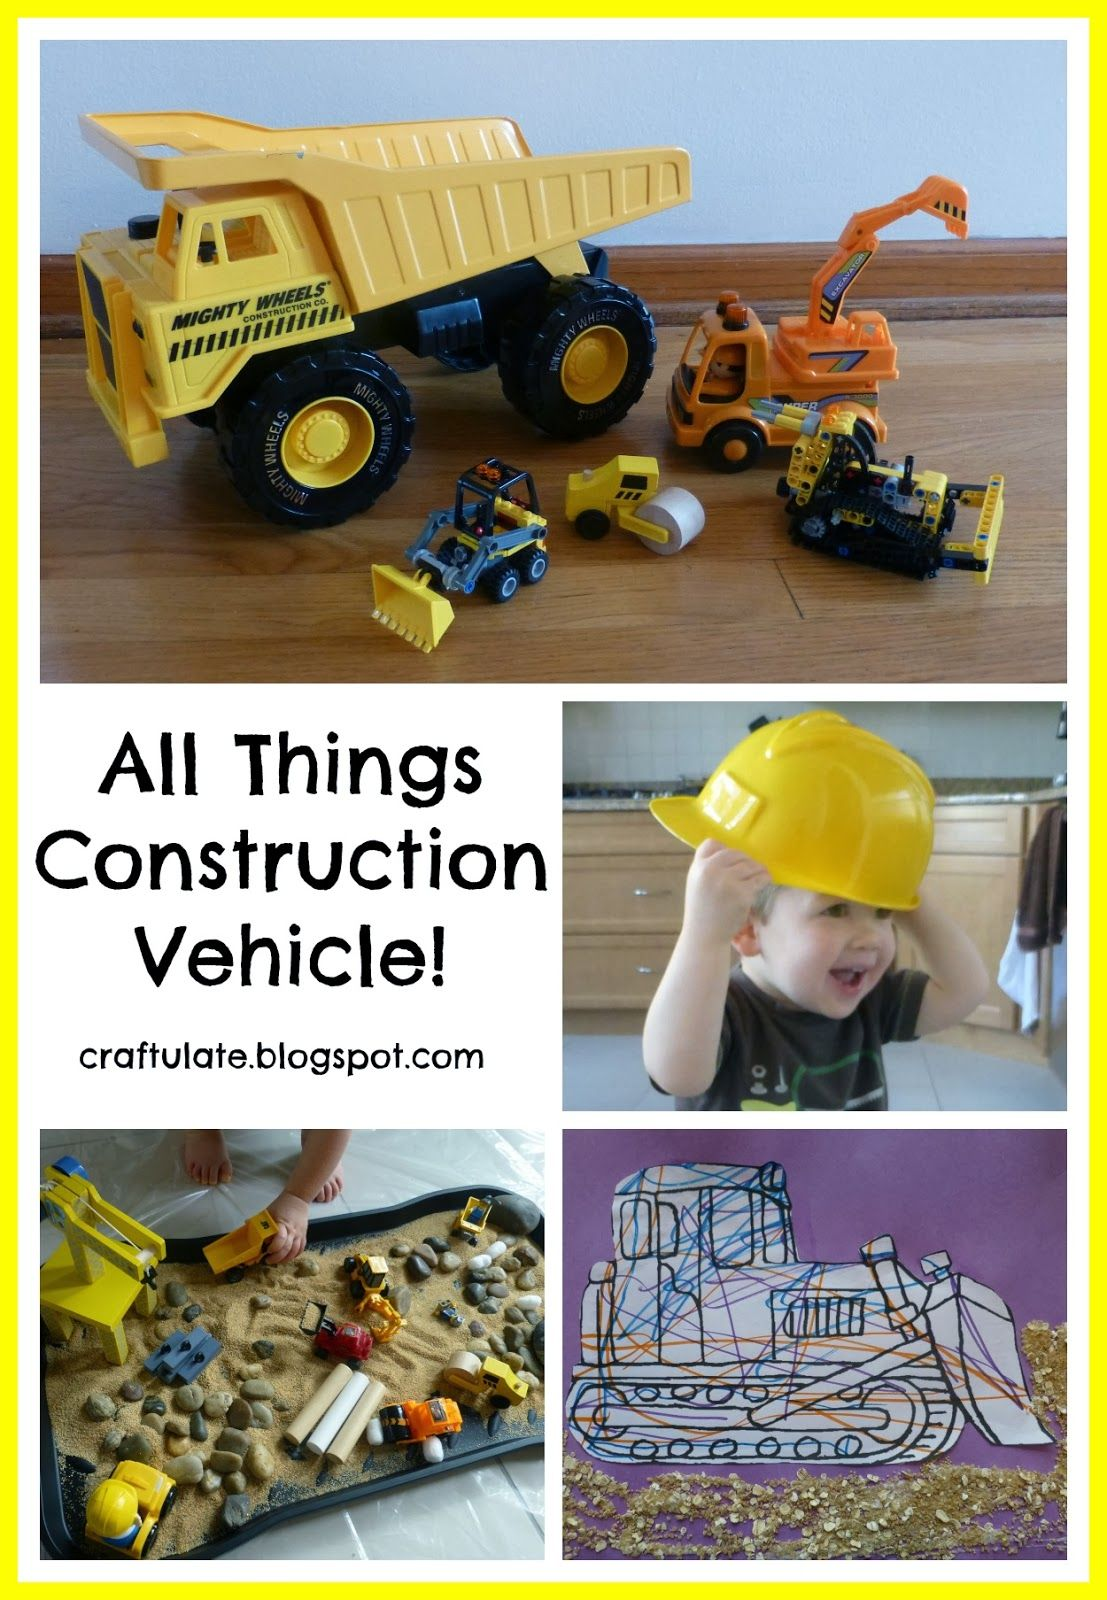 All Things Construction Vehicle